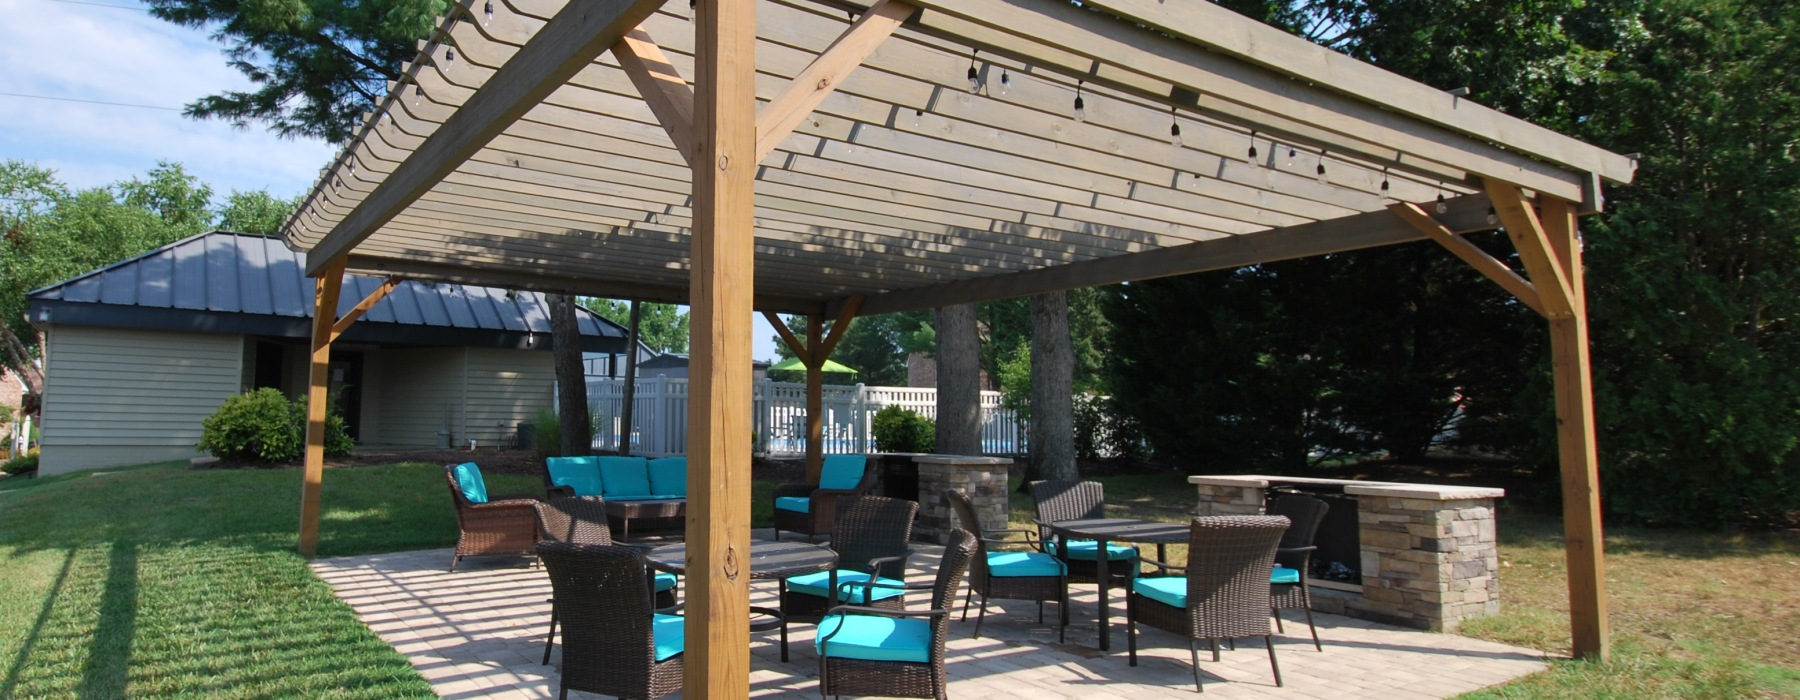 Large pergola with two stone clad grills and string lights